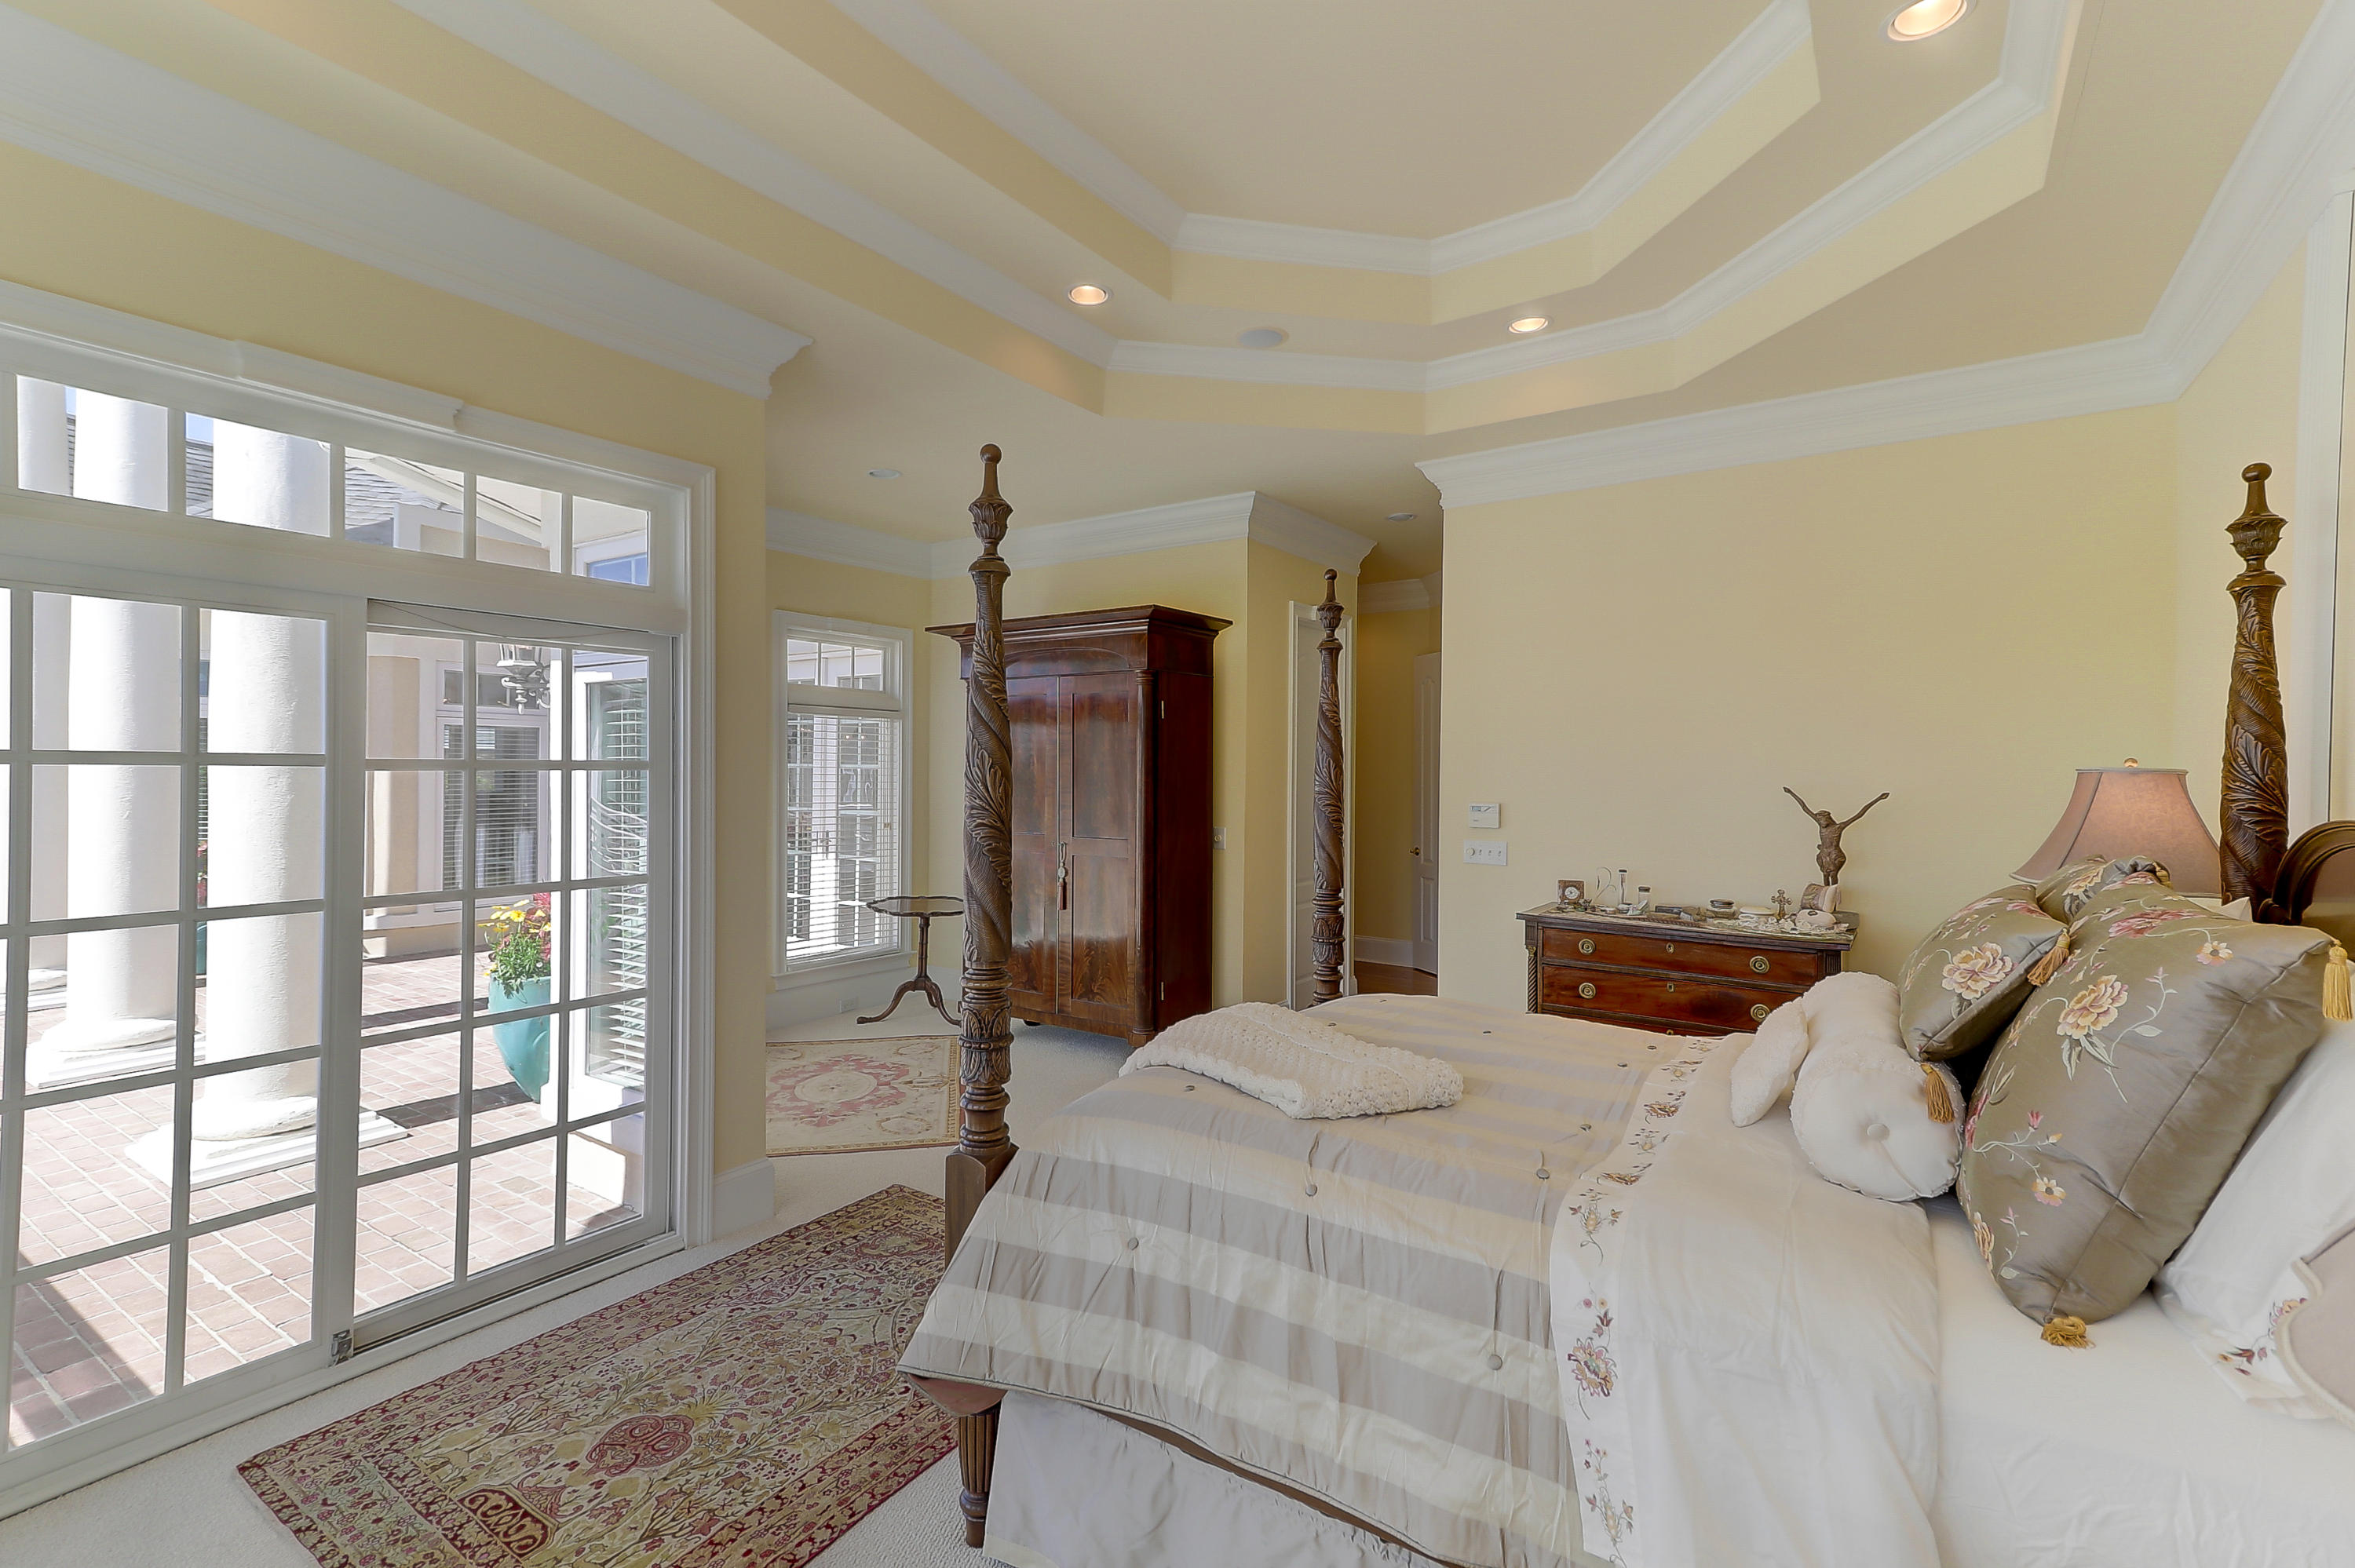 Dunes West Homes For Sale - 2019 Shell Ring, Mount Pleasant, SC - 16